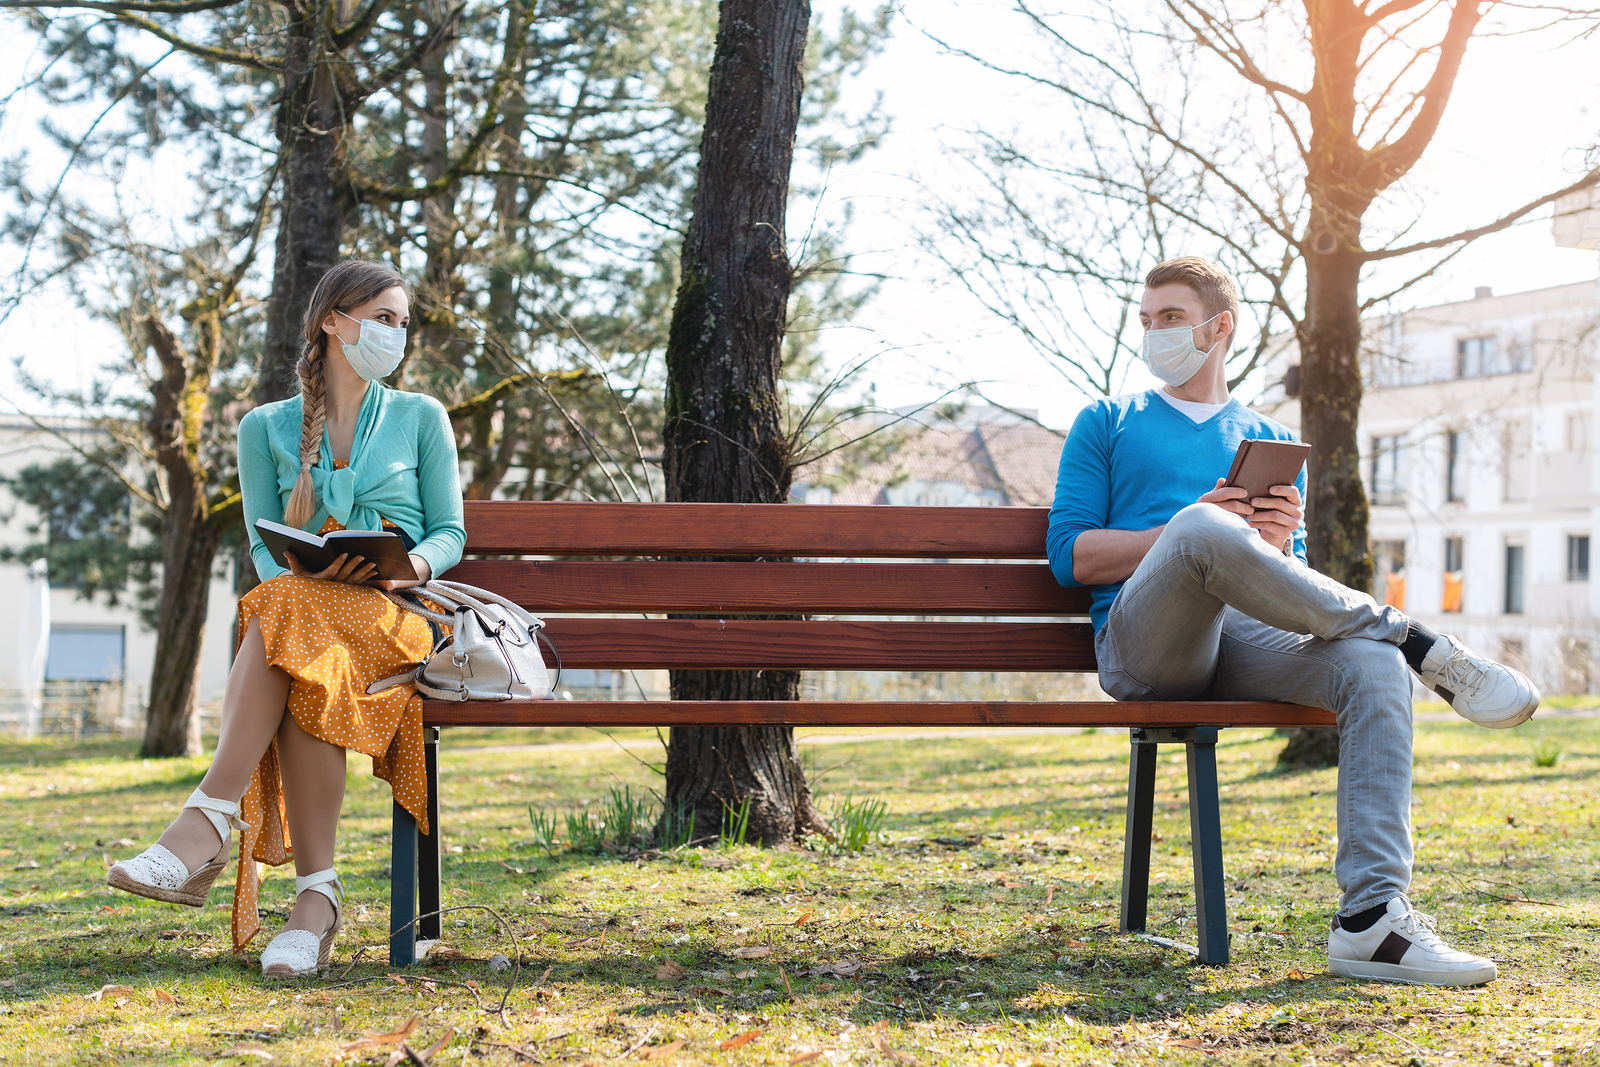 Preventing Loneliness During Social Distancing